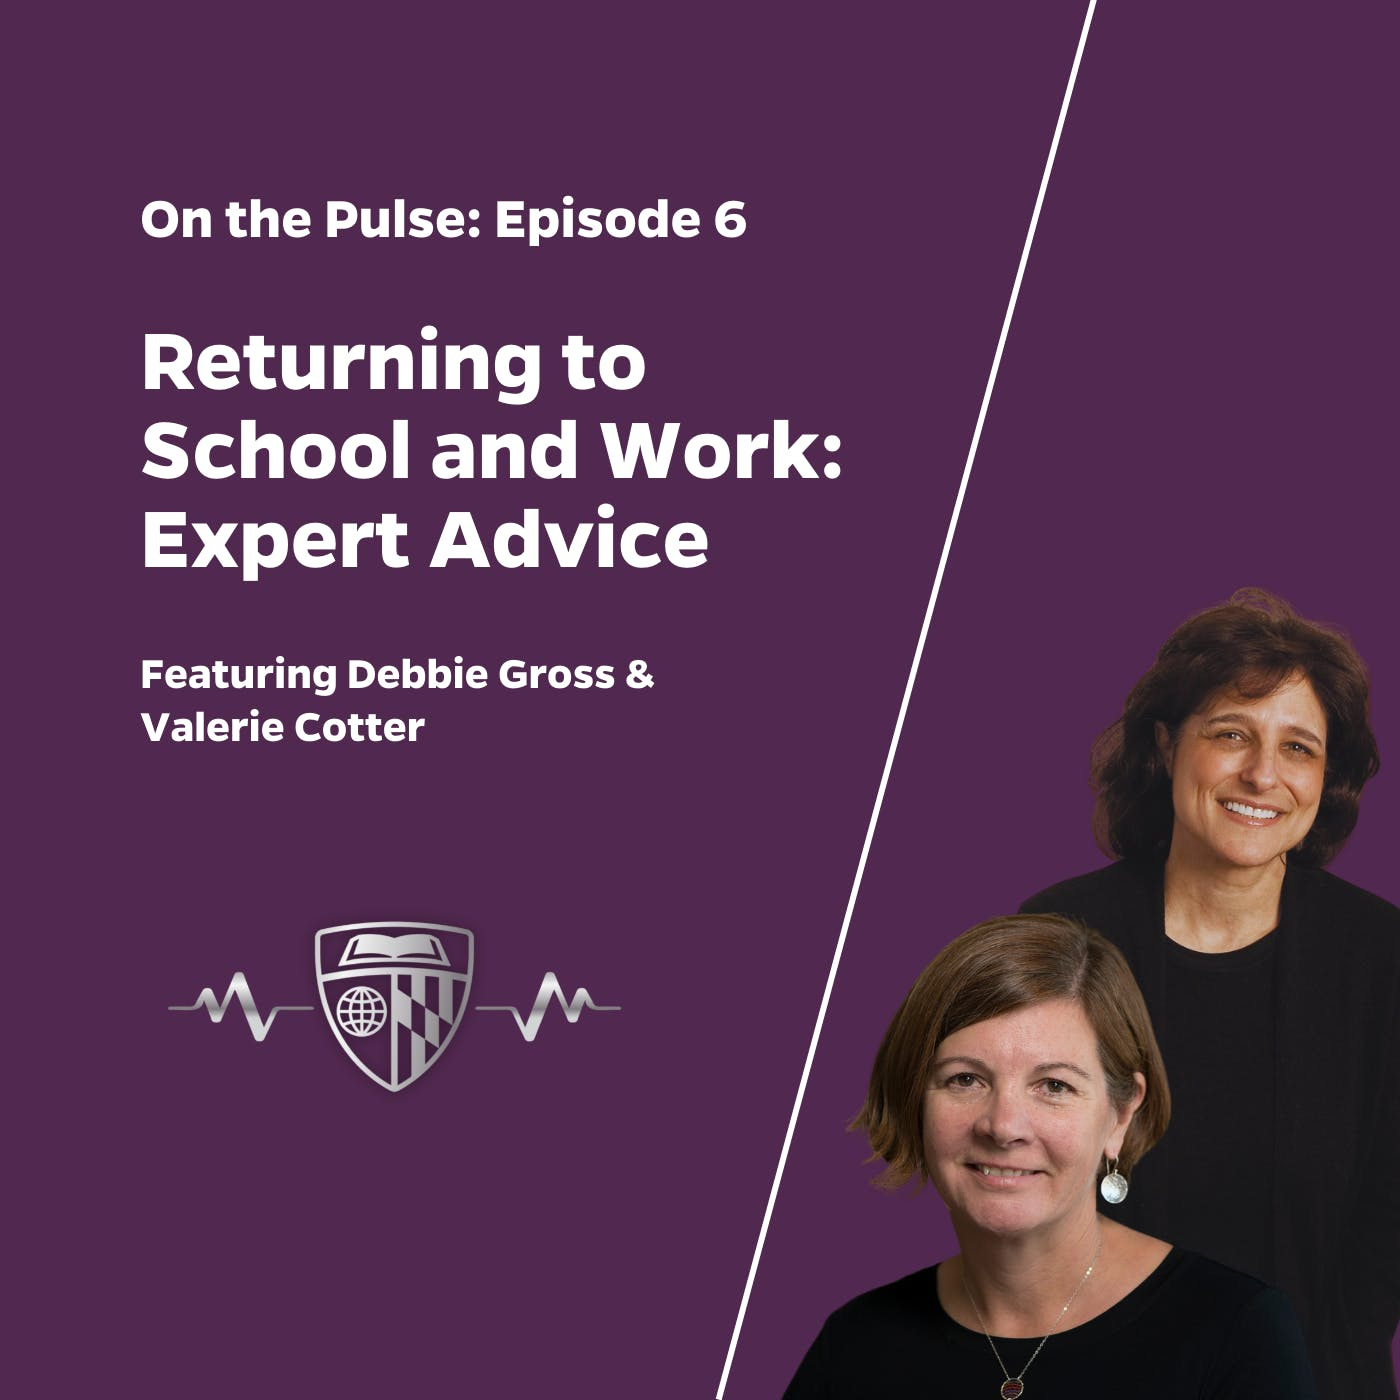 Episode 6: Expert Advice (and Tips) for Returning to School and Work Amid Continued COVID-19 Pandemic